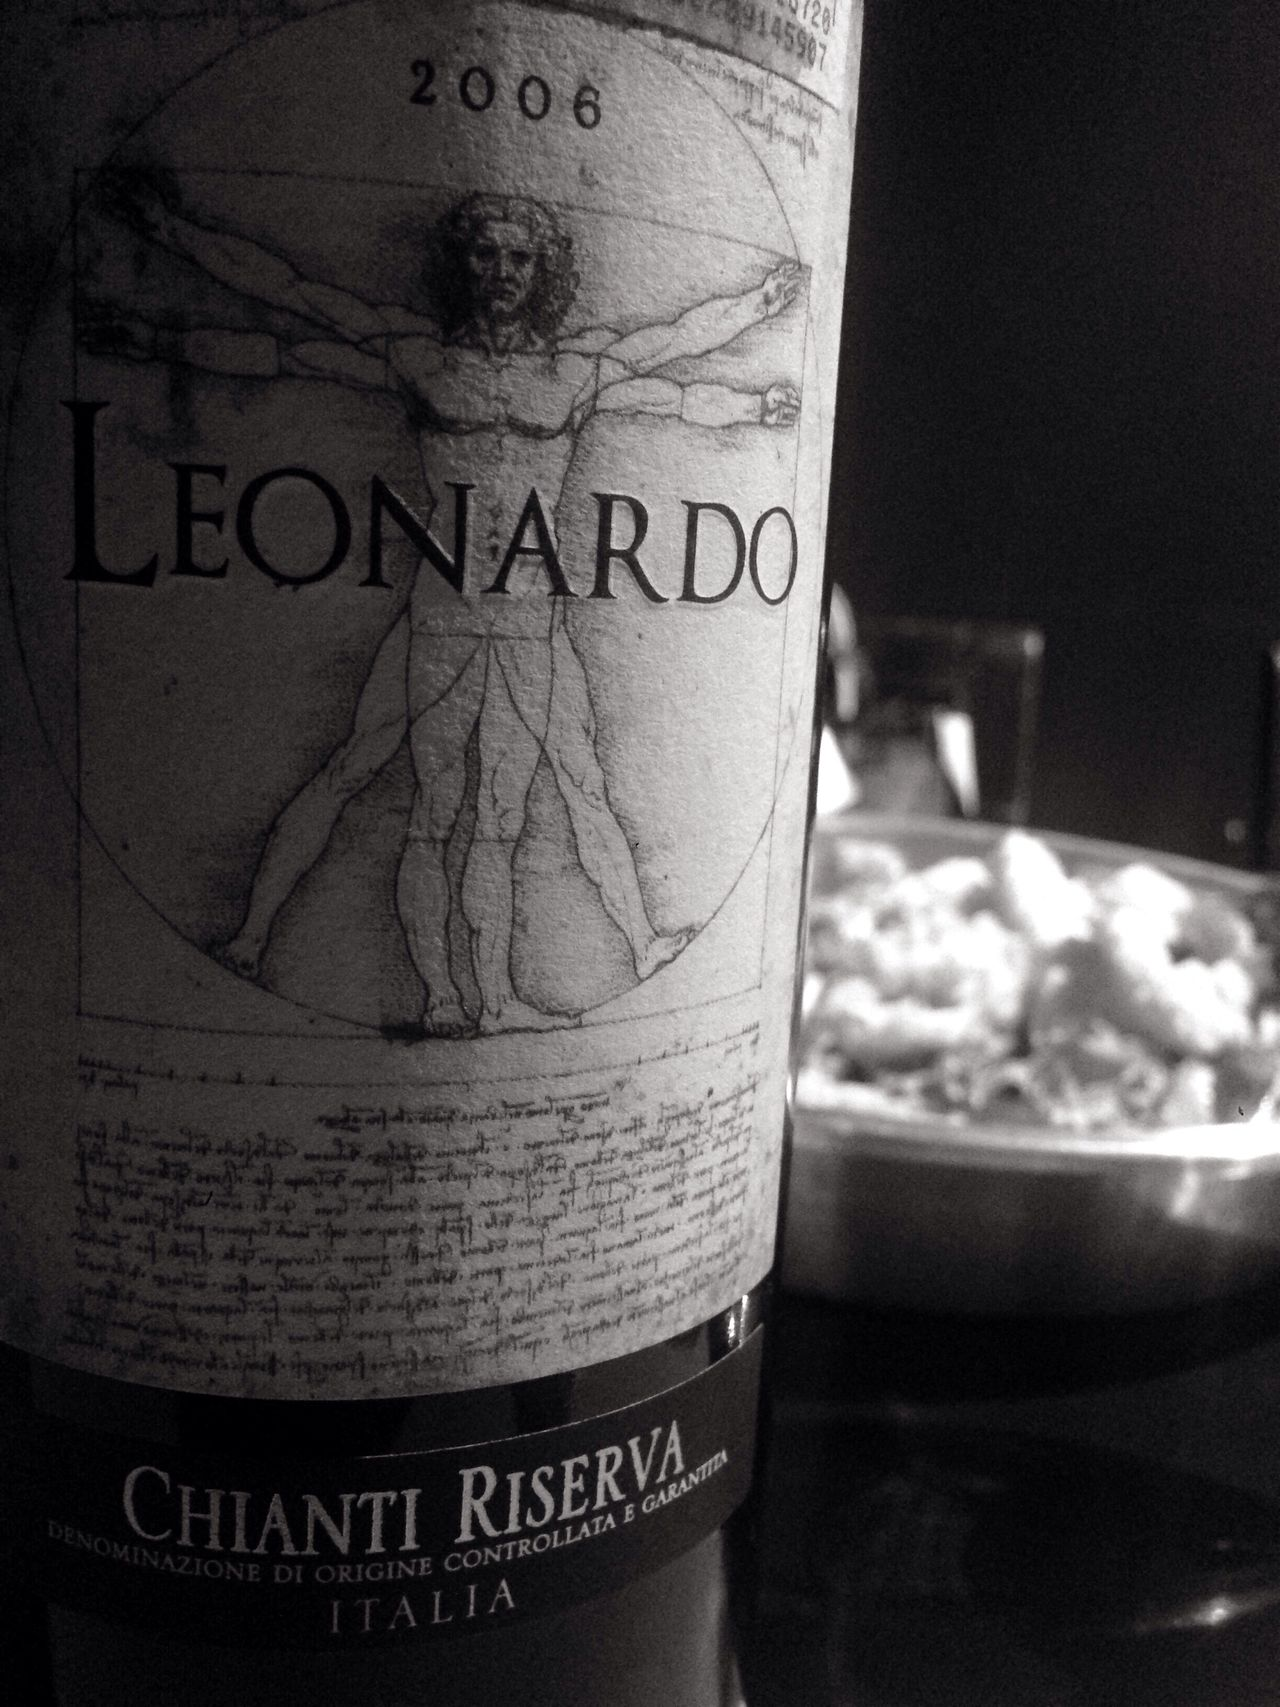 wine is the answer Text Indoors  Close-up No People Day wine Chianti Riserva Wine red wine Bottle leonardo Vitruvian